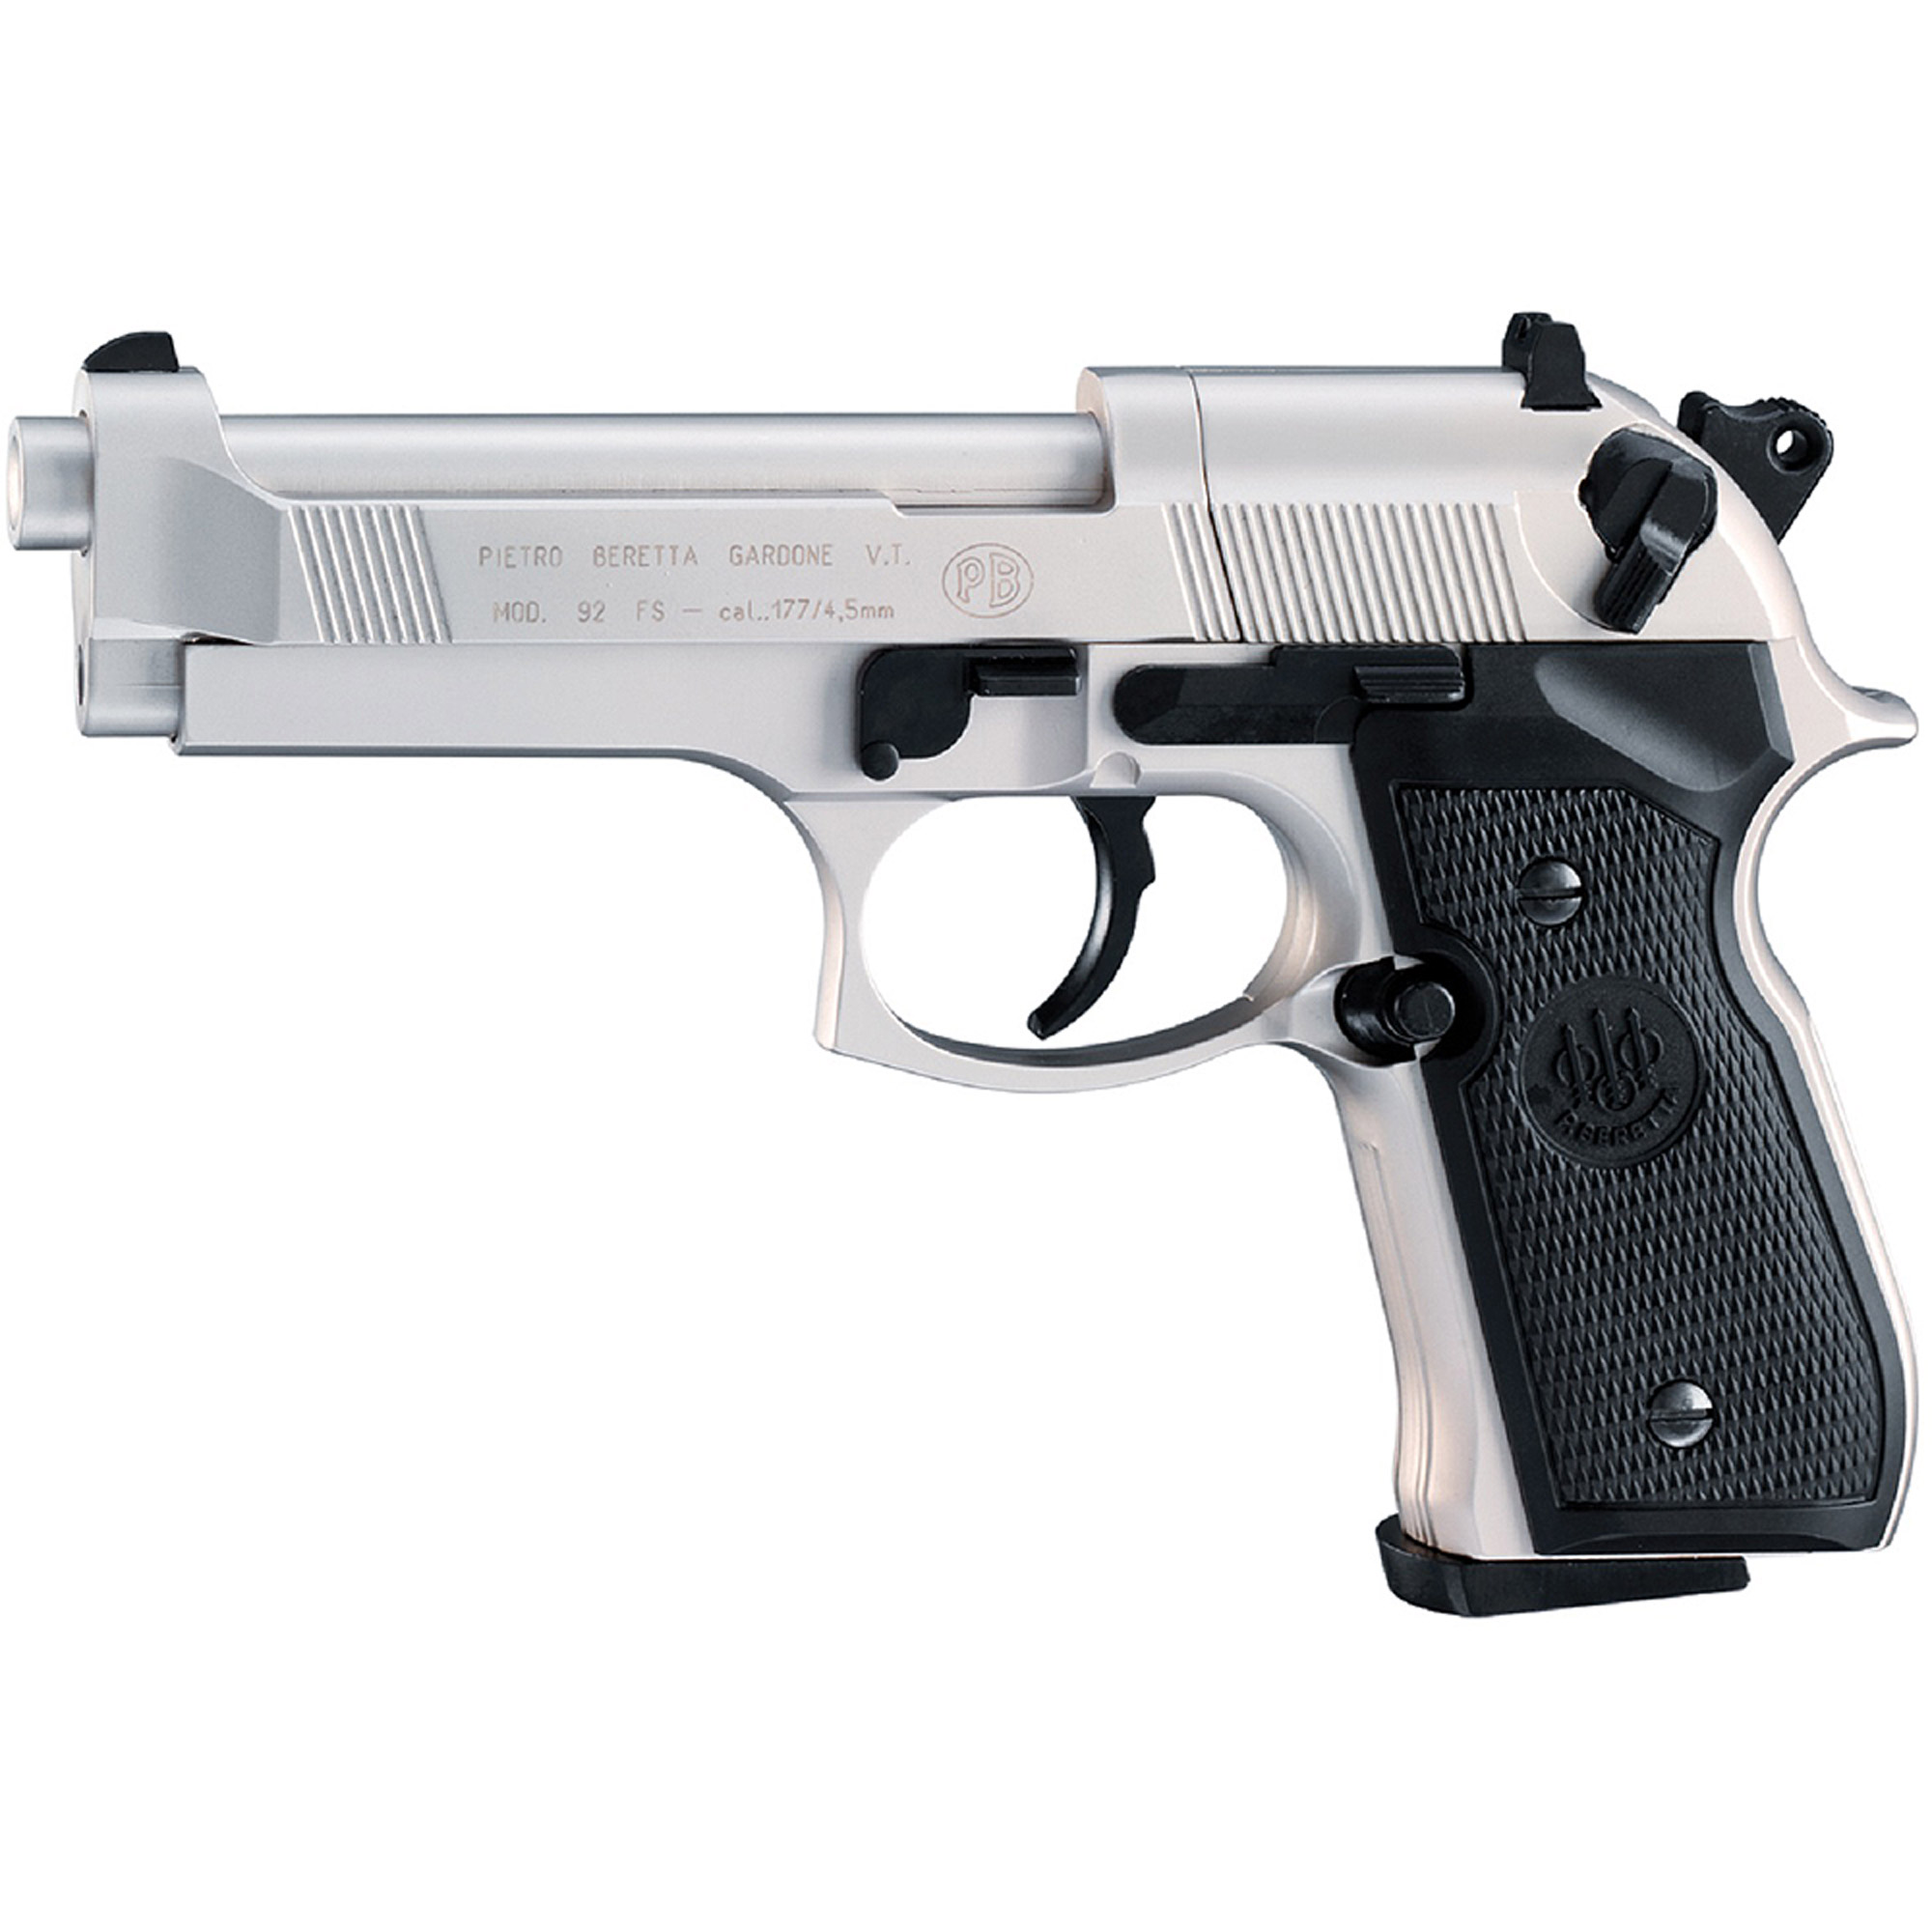 Beretta M 92 Air Gun, FS 8 Shot Rotary, Nickel/Black